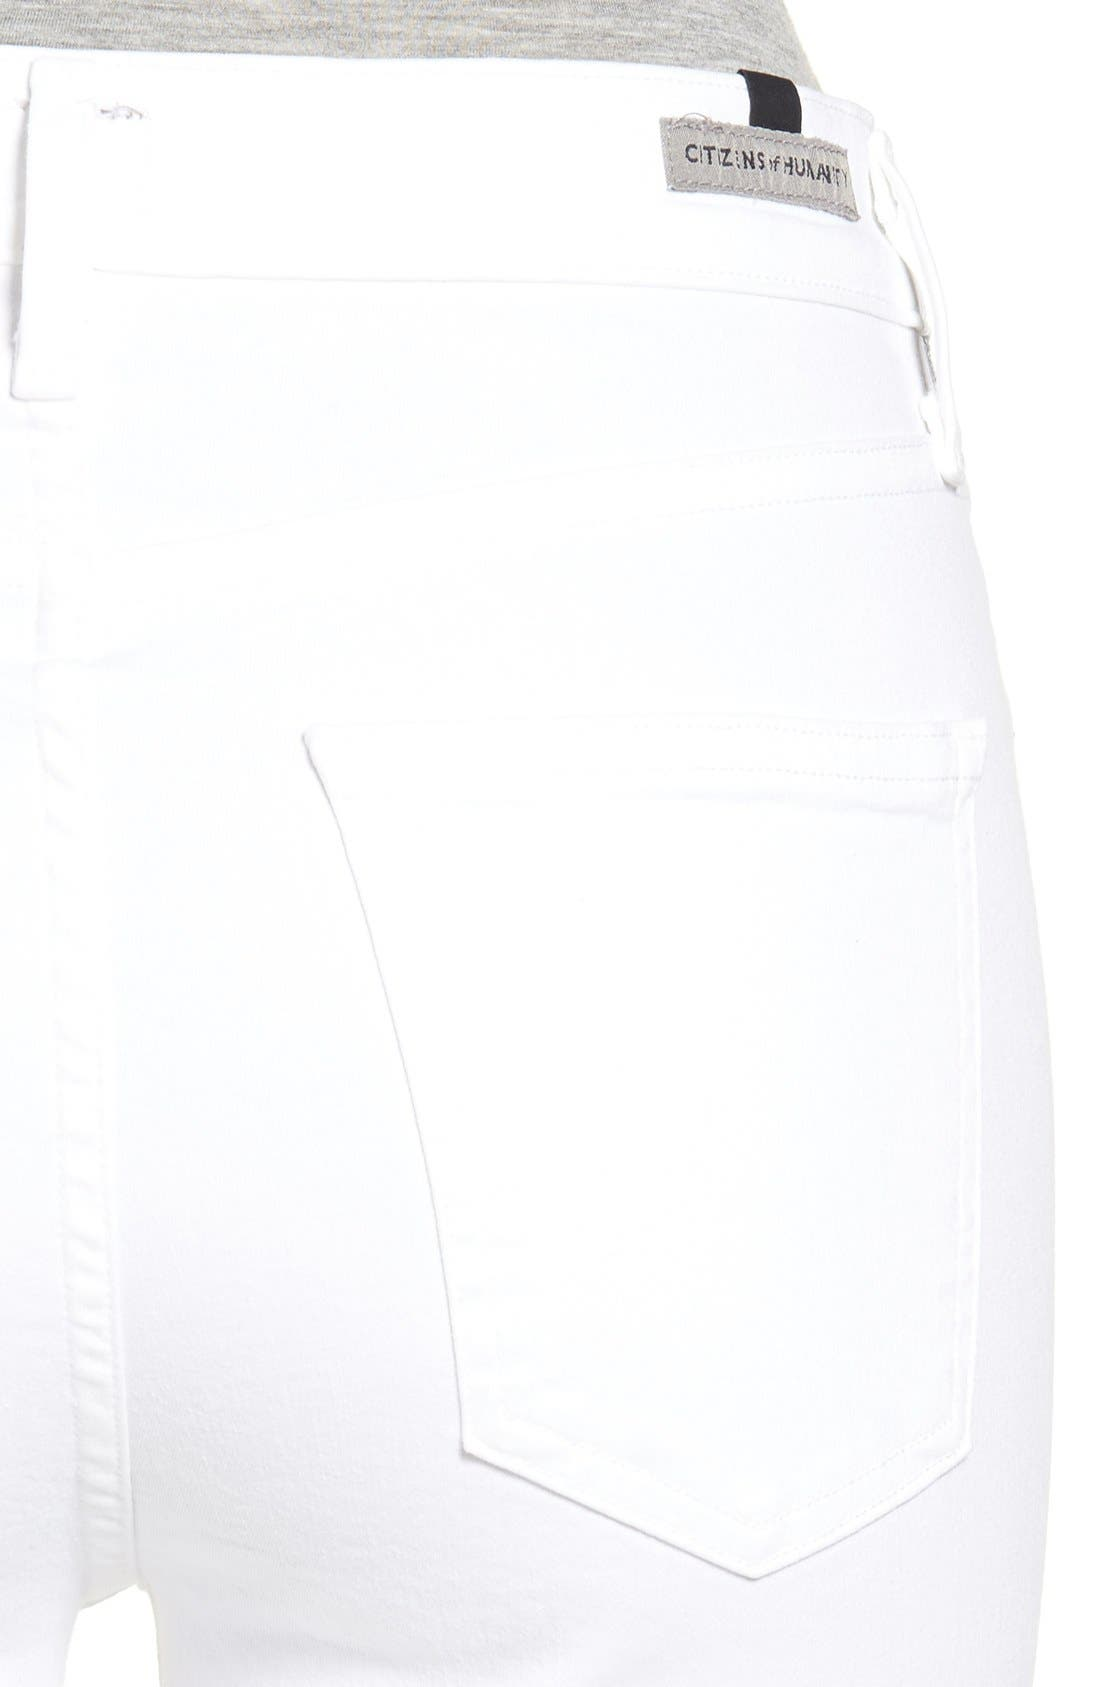 Alternate Image 4  - Citizens of Humanity Rocket High Waist Crop Skinny Jeans (Sculpt White)